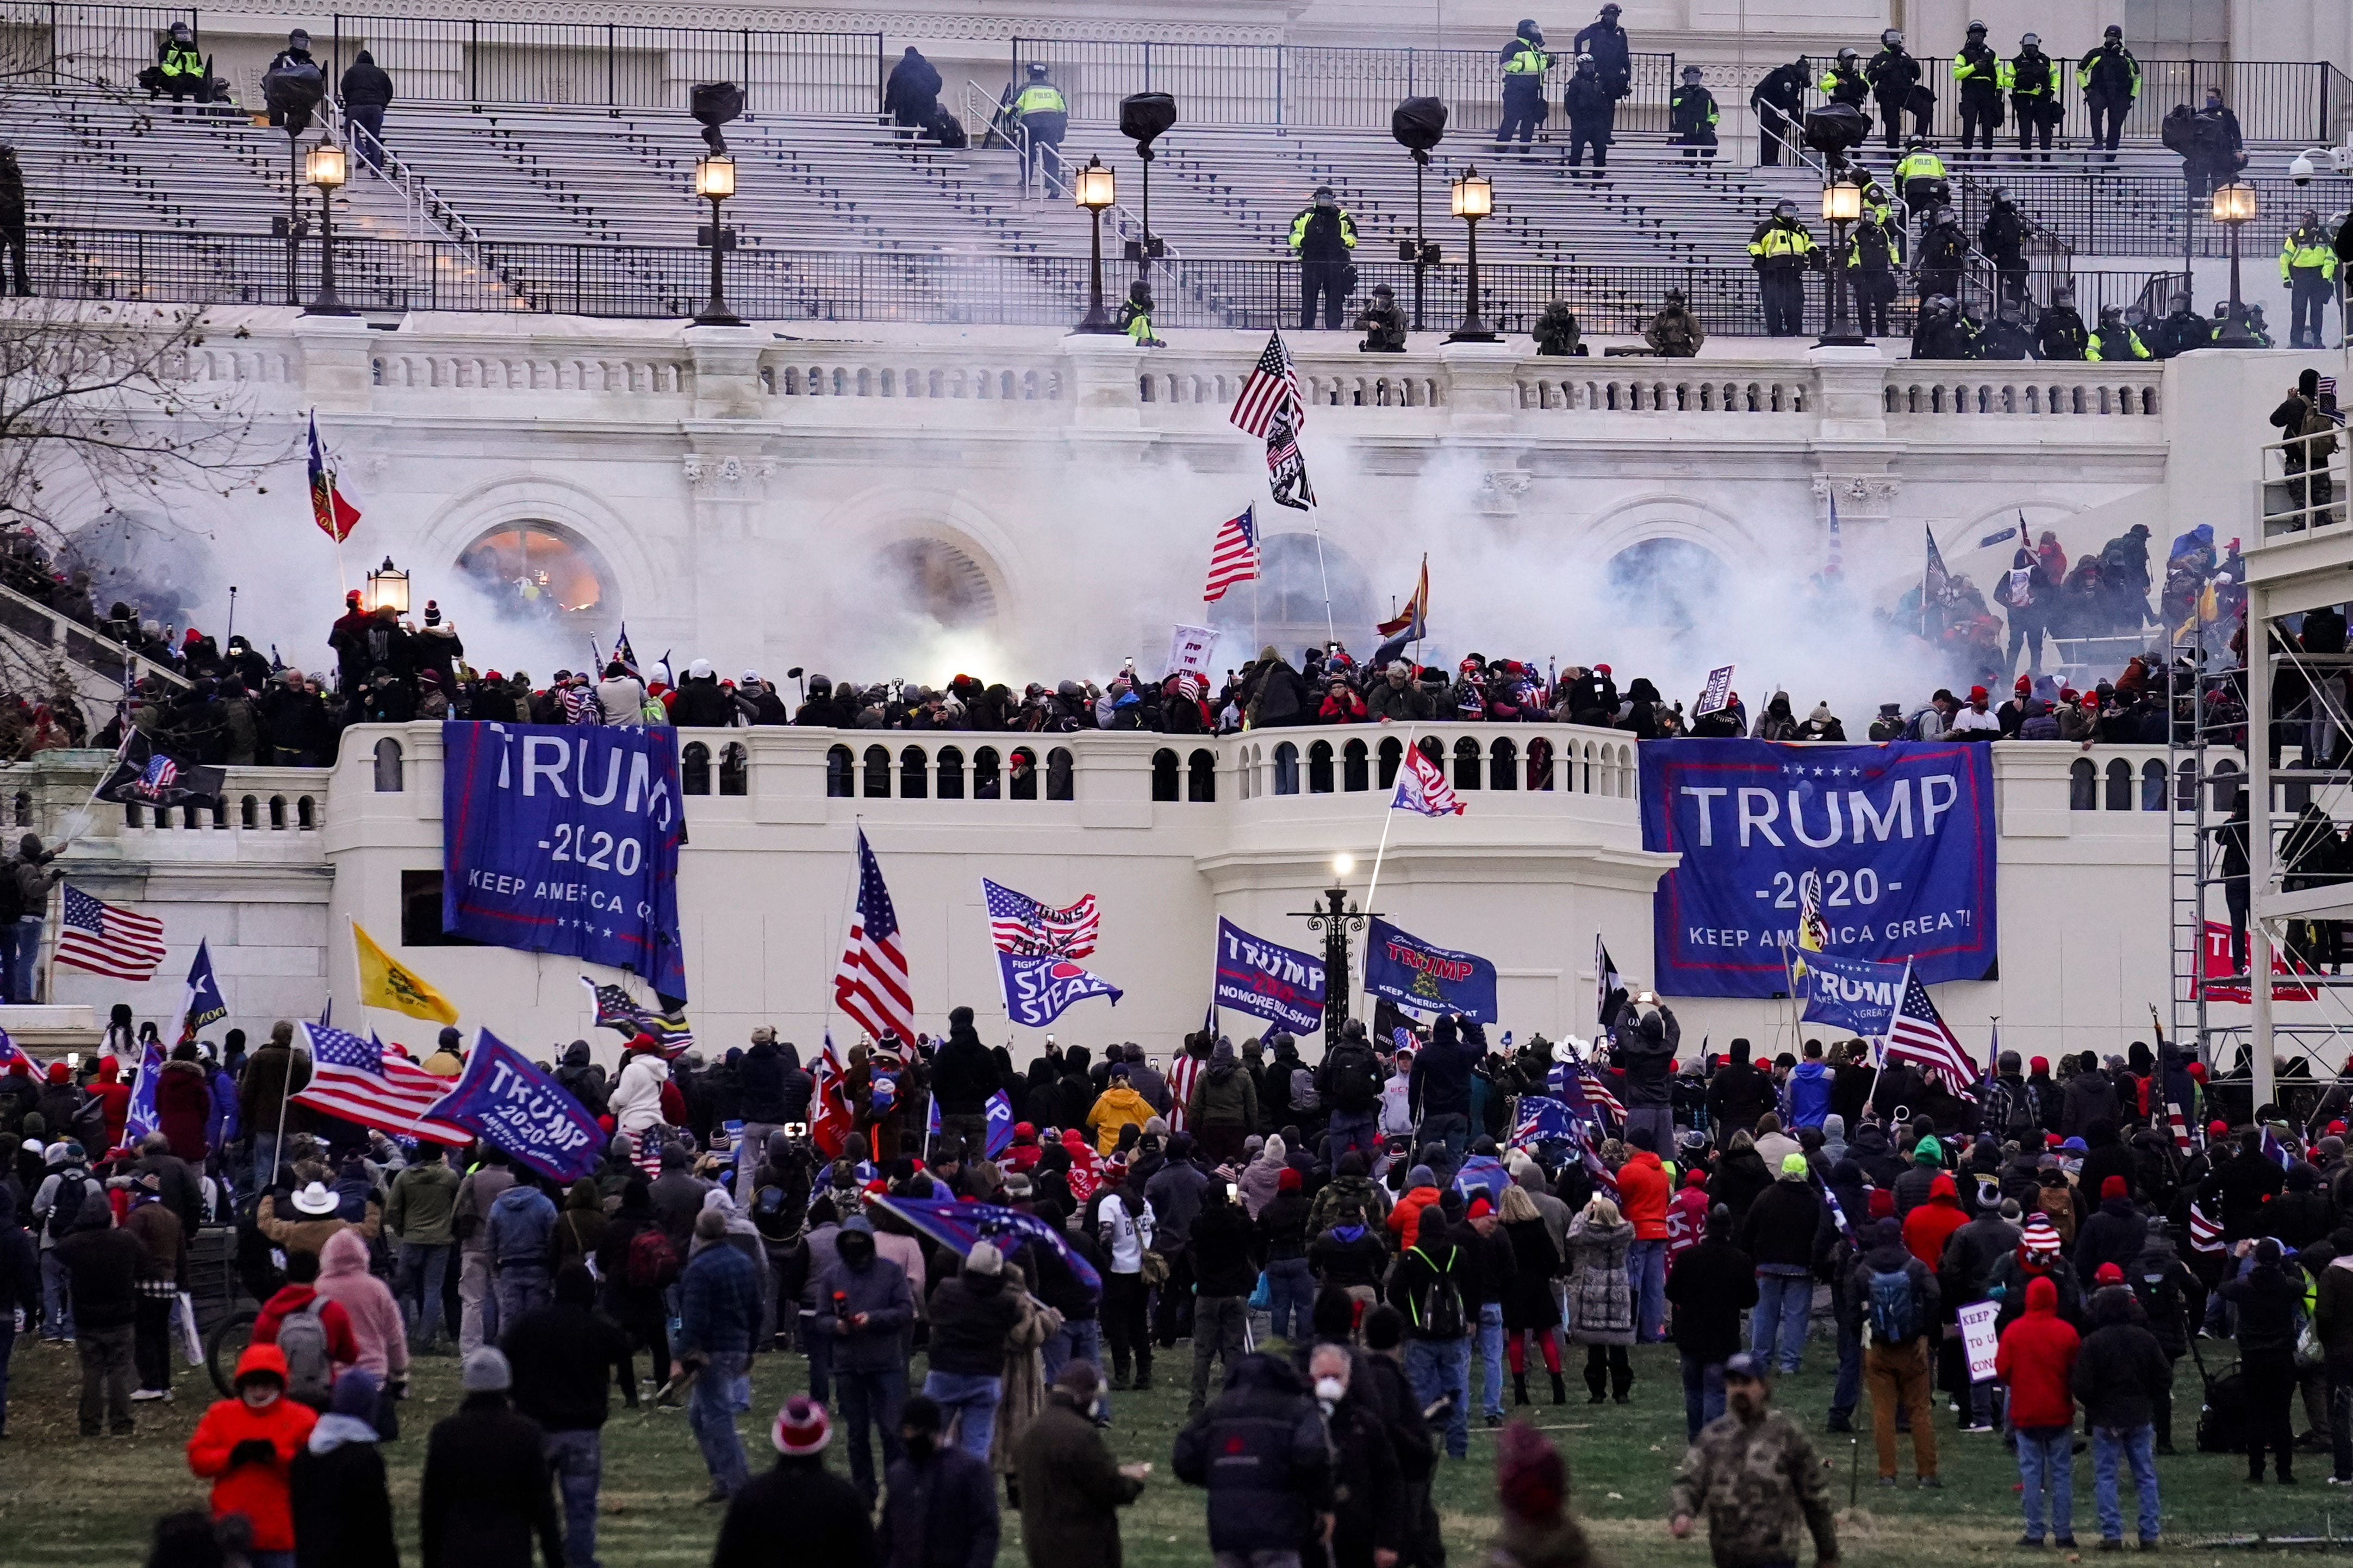 Man linked to Capitol riot convicted of threats to lawmakers 1